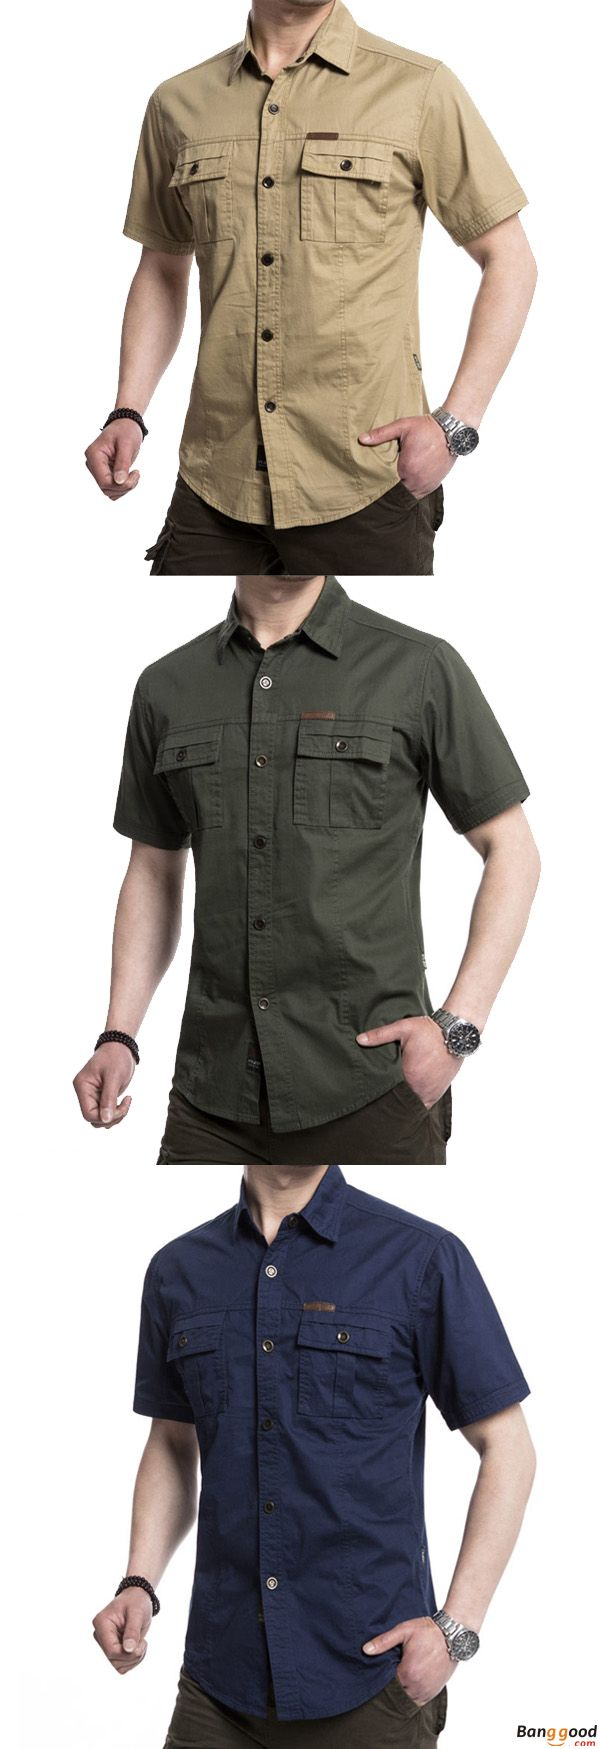 US$26.34 + Free Shipping. Outdoor Shirt, Military Shirt, Double Pockets Solid Color Shirt, Casual Shirt, Short Sleeve Shirt, Men Cotton Shirt. US Size: S - 3XL. Color: Navy Blue, Army Green, Khaki. >>> To View Further, Visit Now.